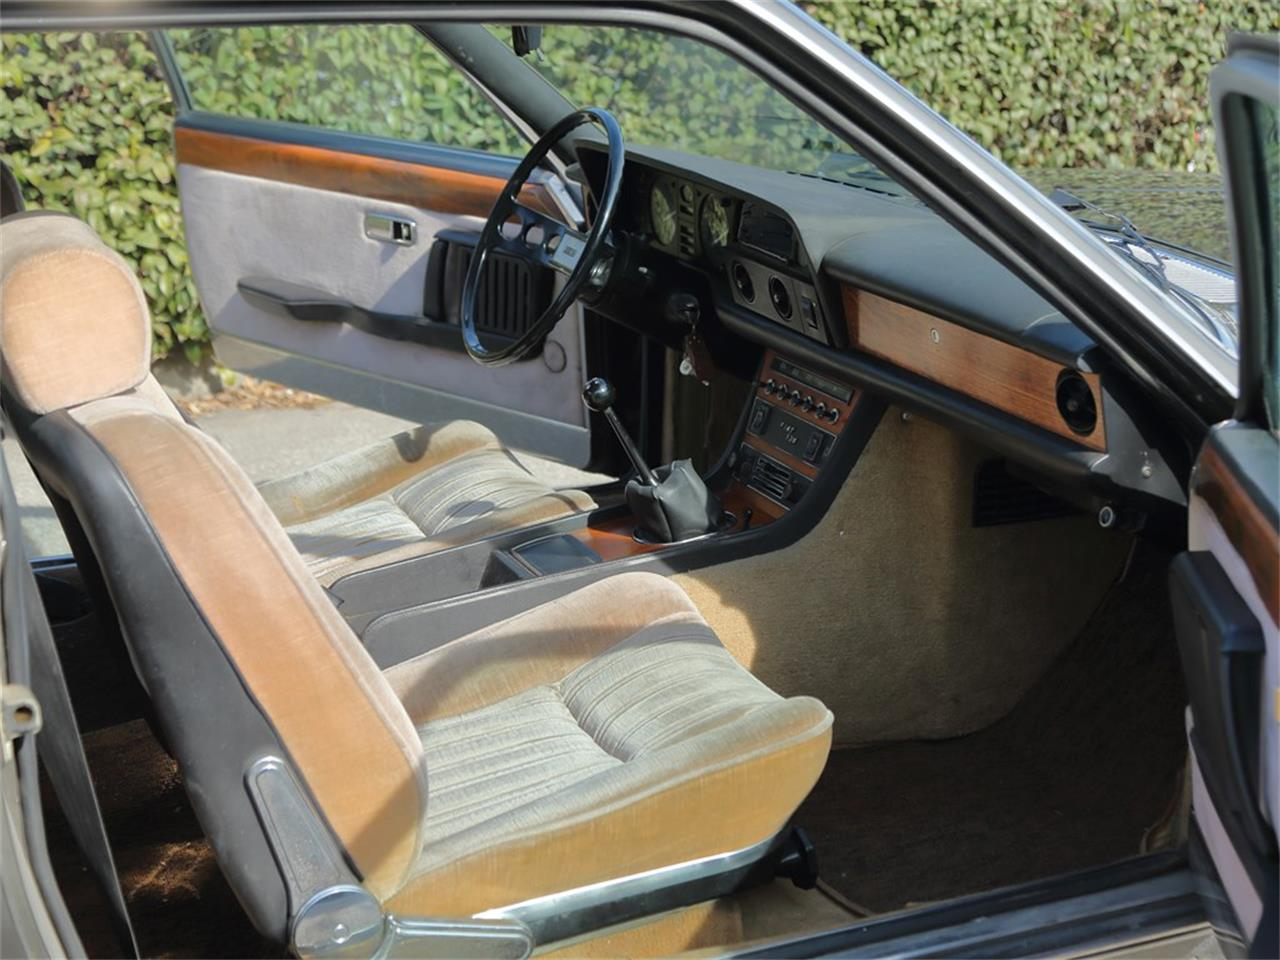 1973 Fiat 130 for sale in Essen, Other – photo 8